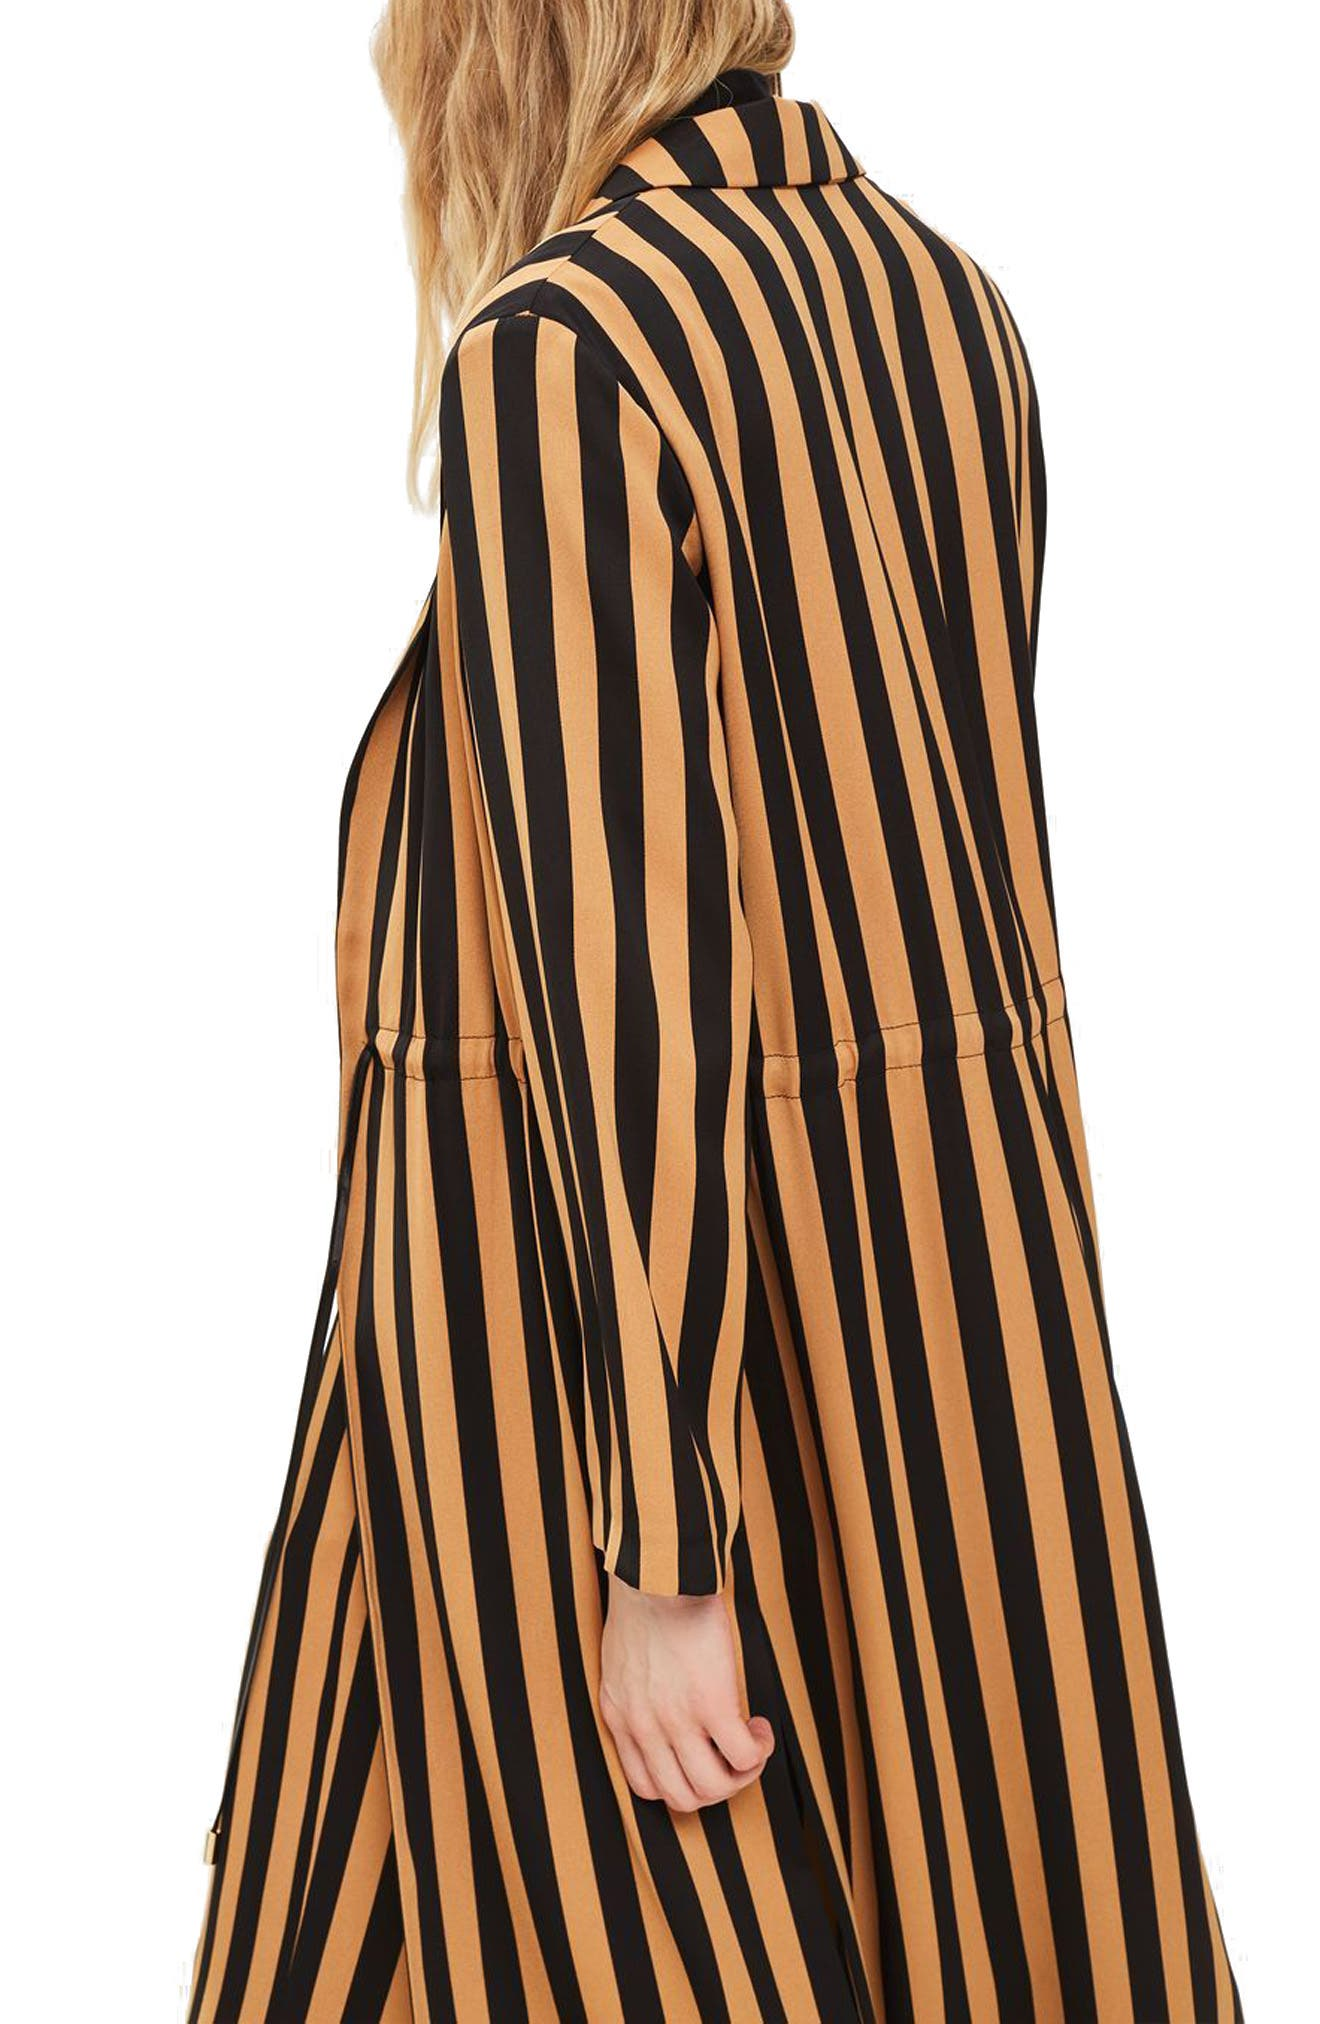 TOPSHOP,                             Stripe Duster Jacket,                             Alternate thumbnail 2, color,                             201